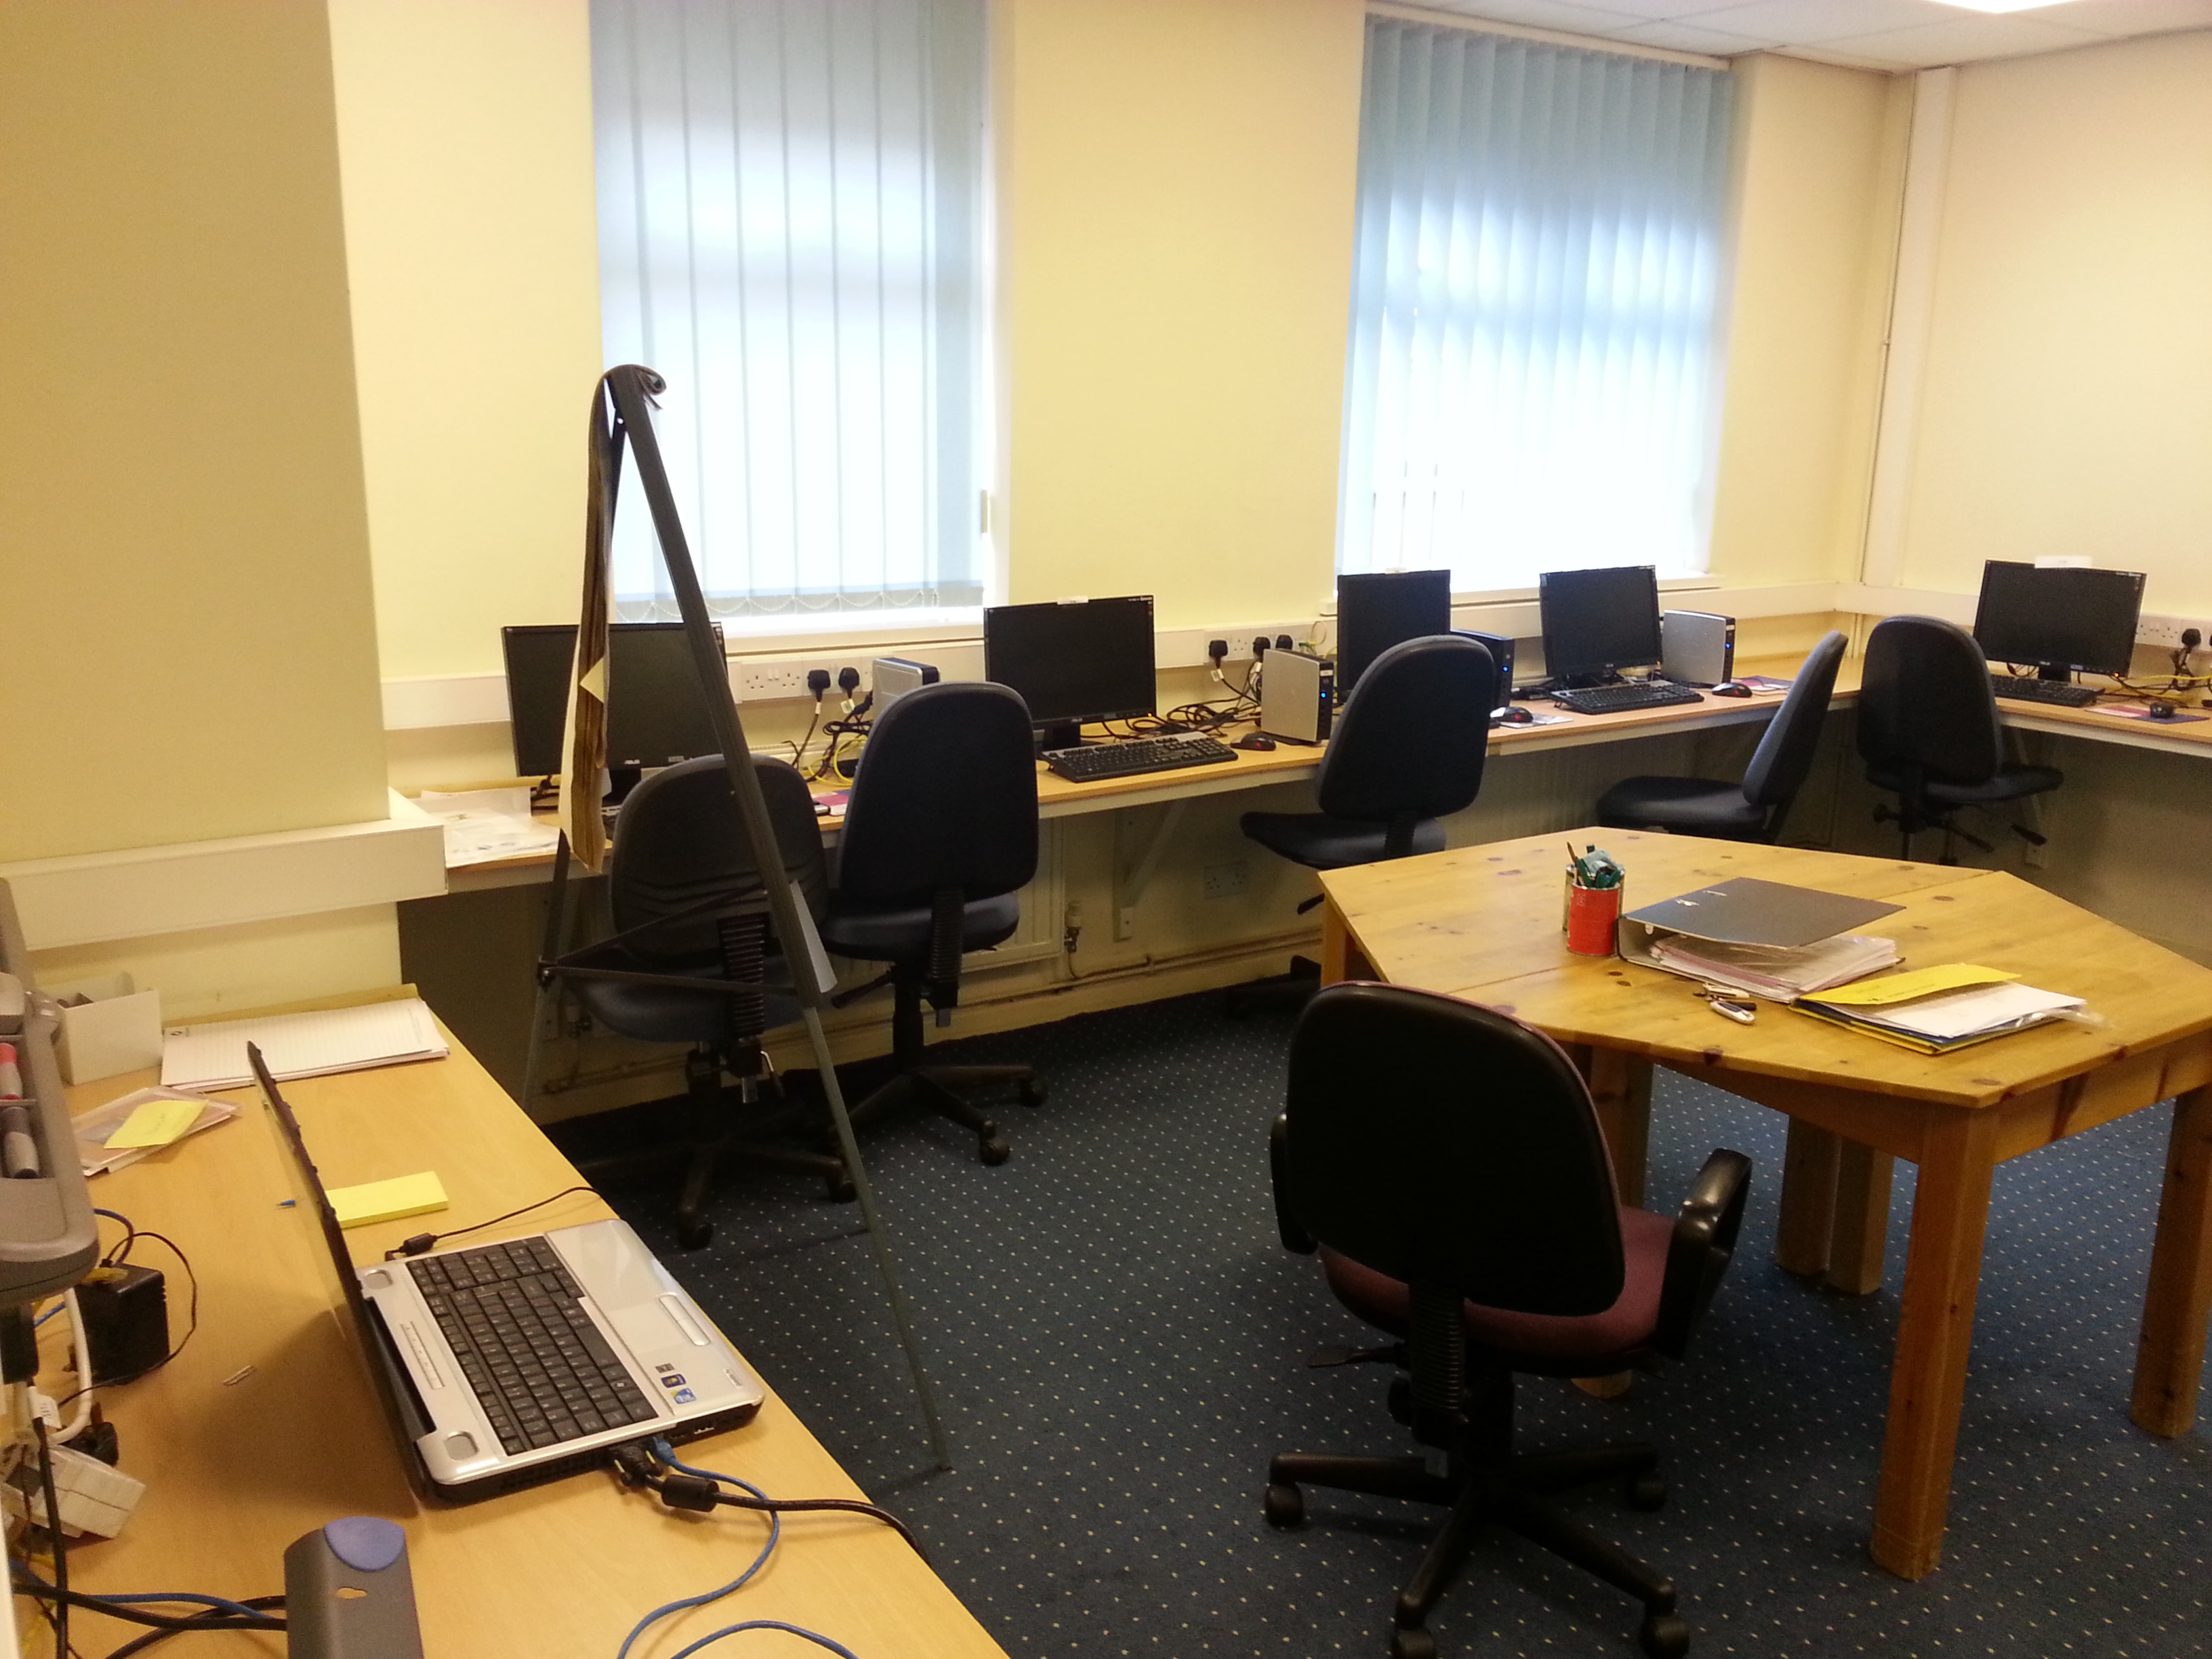 Barrowmore computer training room 2